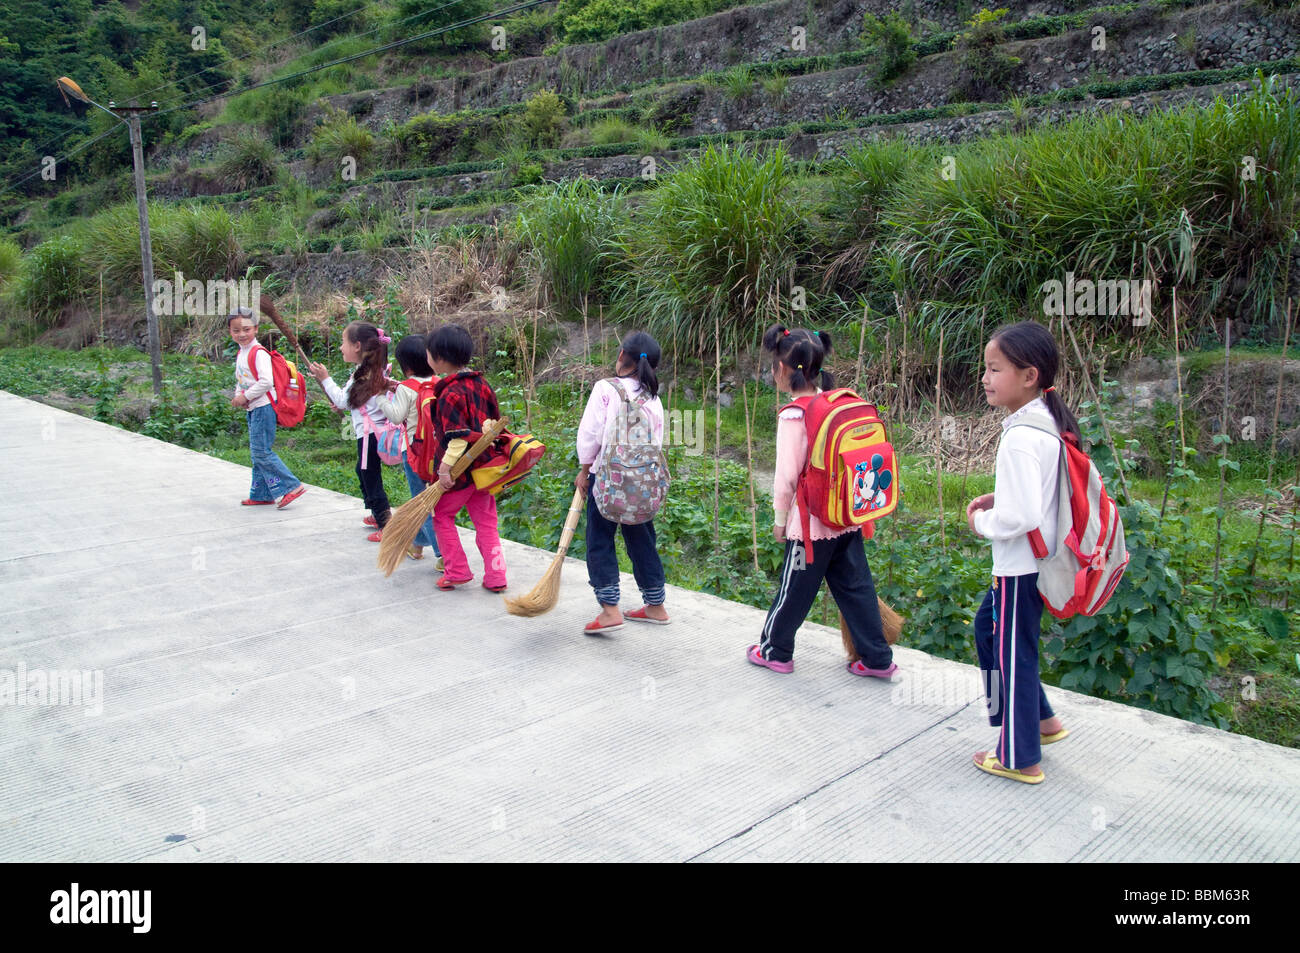 CHINA Children of migrant workers from the countryside attending school in Yunnan province Photo by Julio Etchart - Stock Image